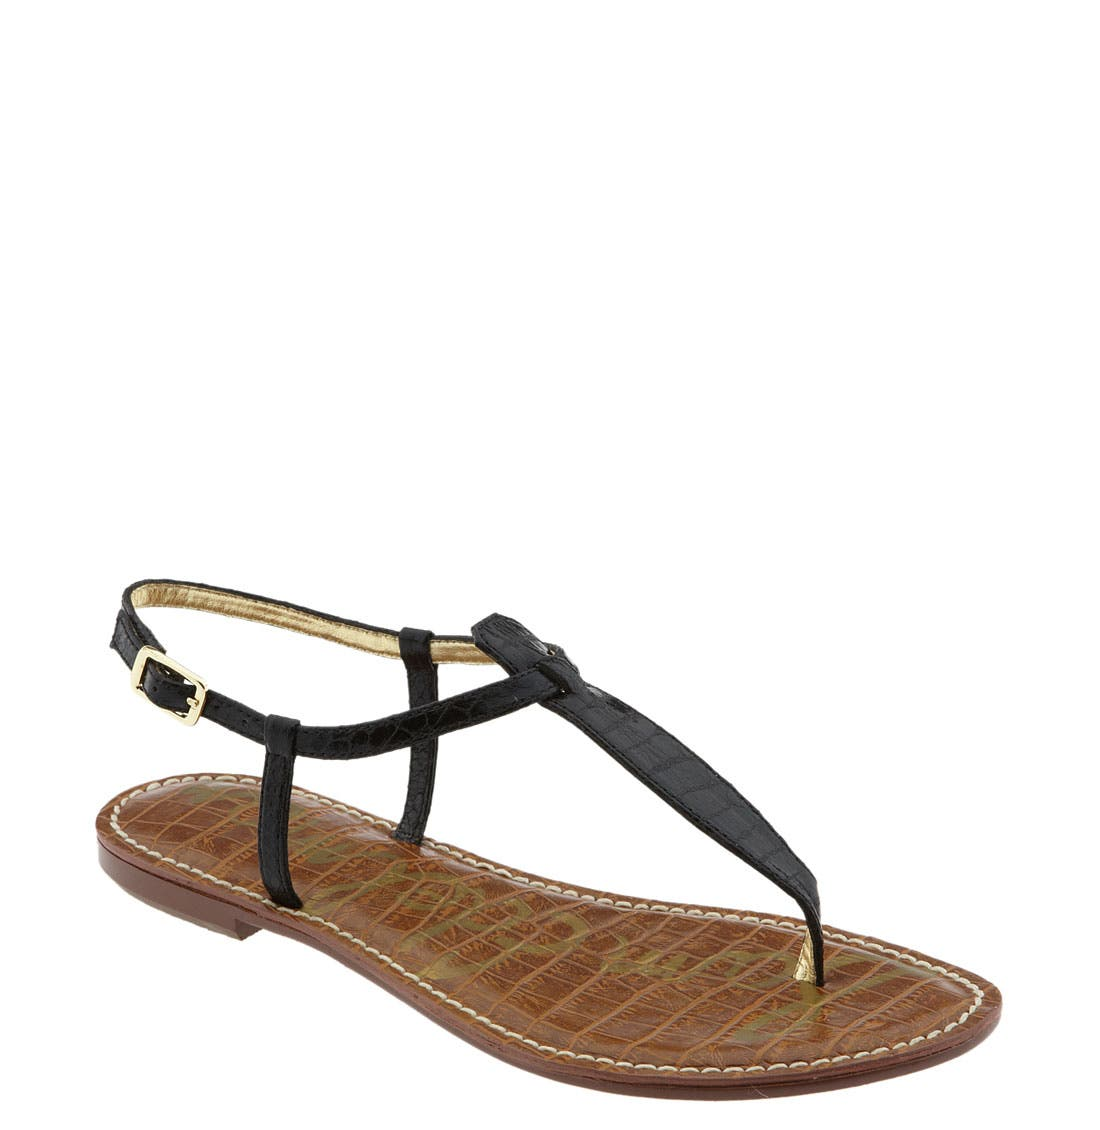 Alternate Image 1 Selected - Sam Edelman 'Gigi' Sandal (Women)